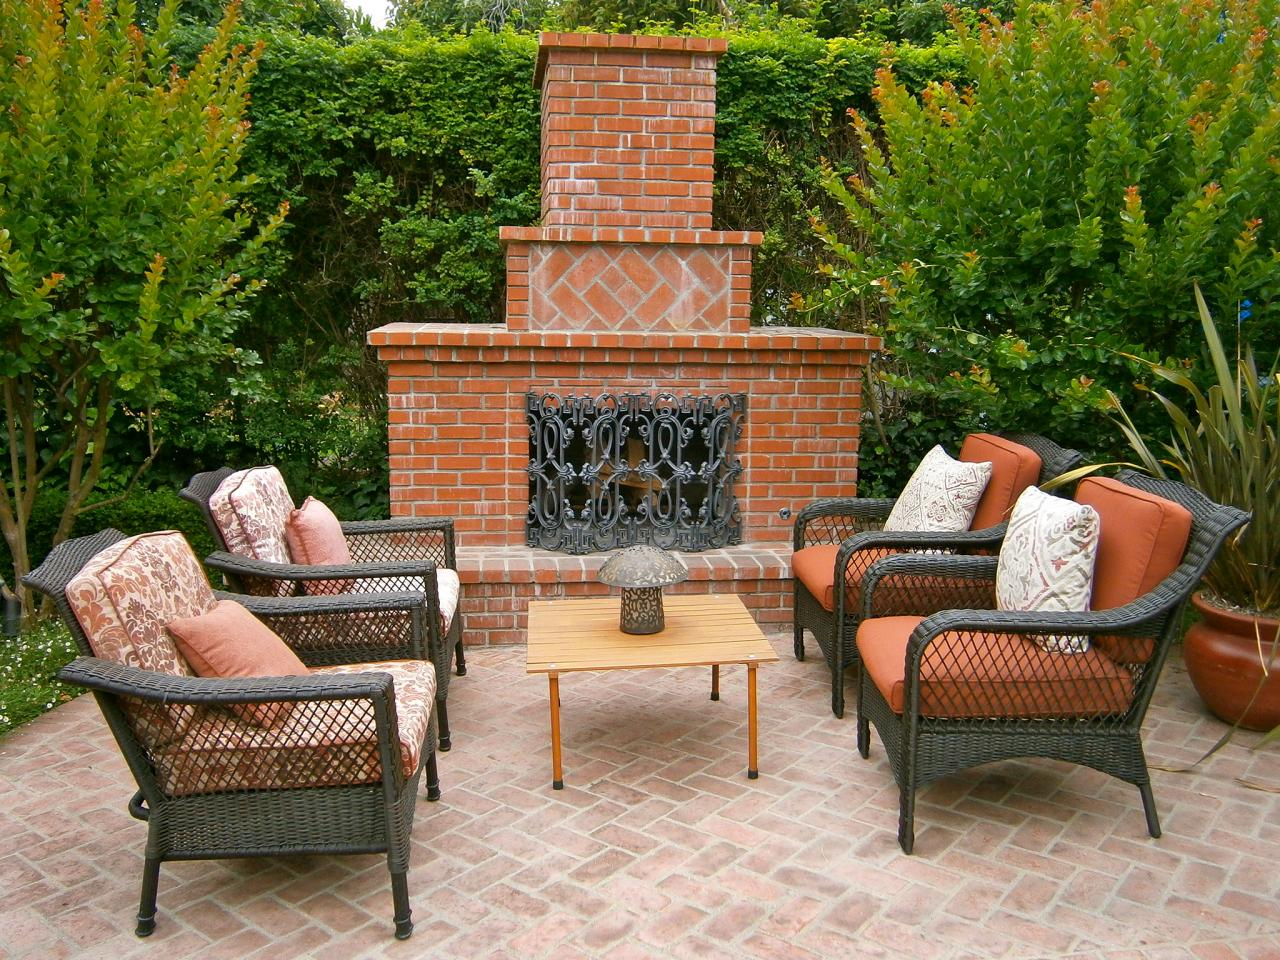 Outdoor brick fireplace kits fireplace design ideas for Where to buy outdoor fireplace